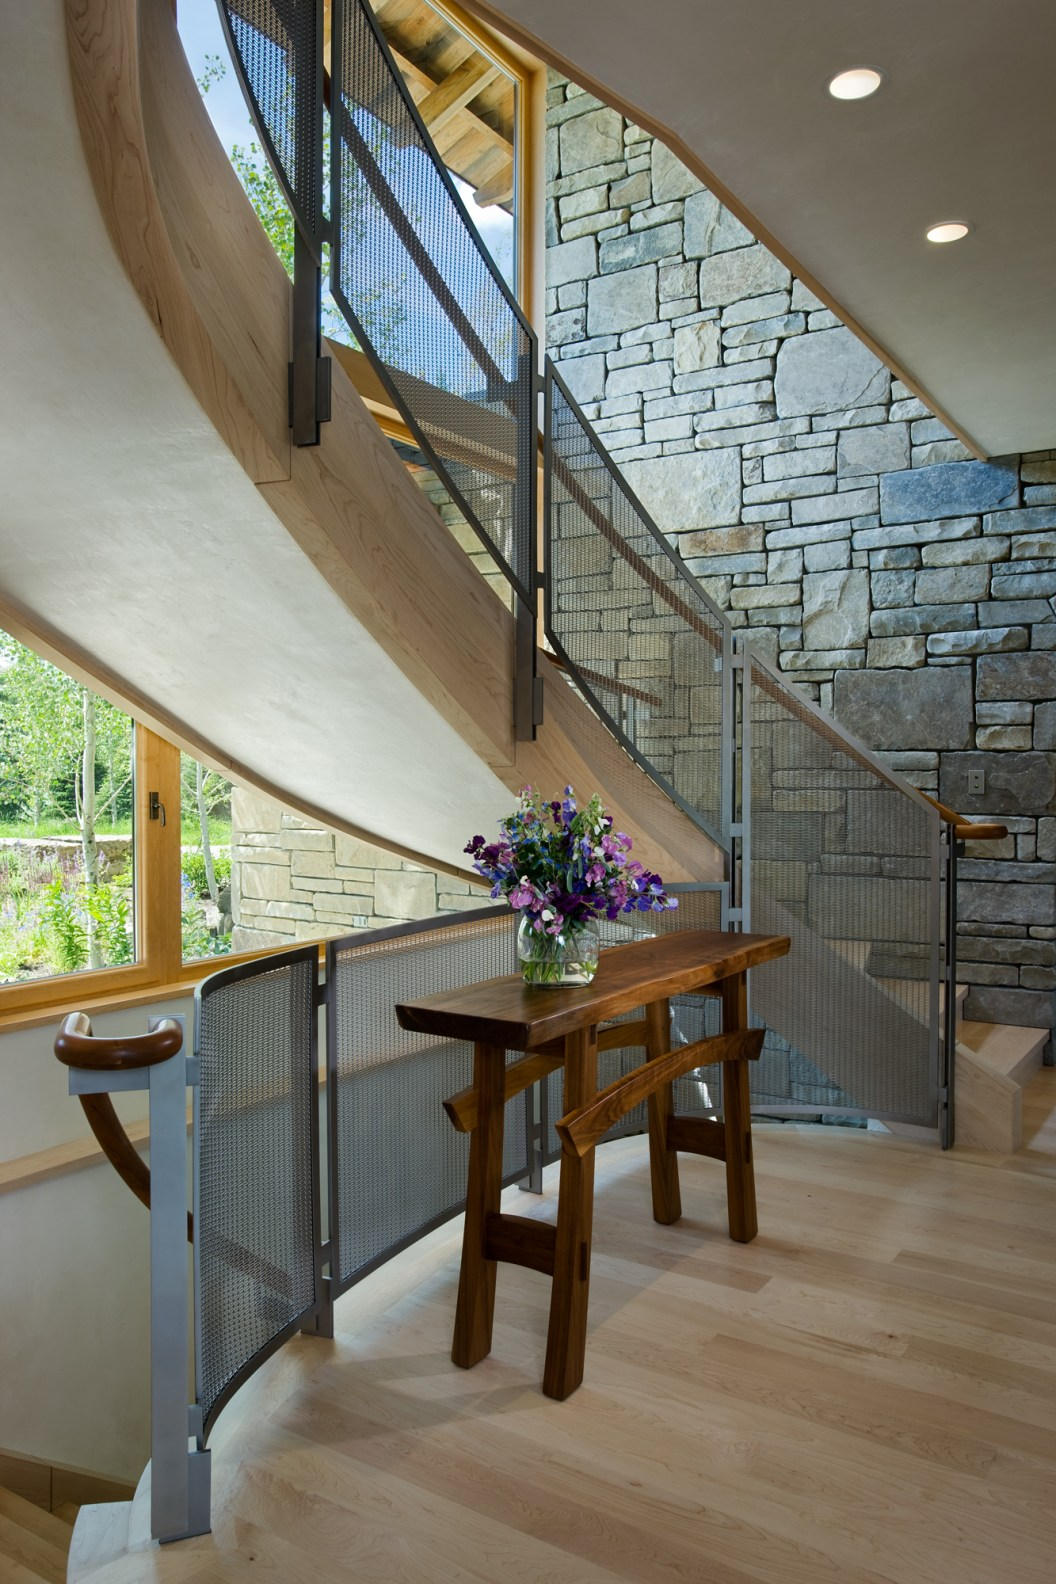 The only new wood used in the house is the flooring and this stairway, made by Spearhead Timberworks in British Columbia.